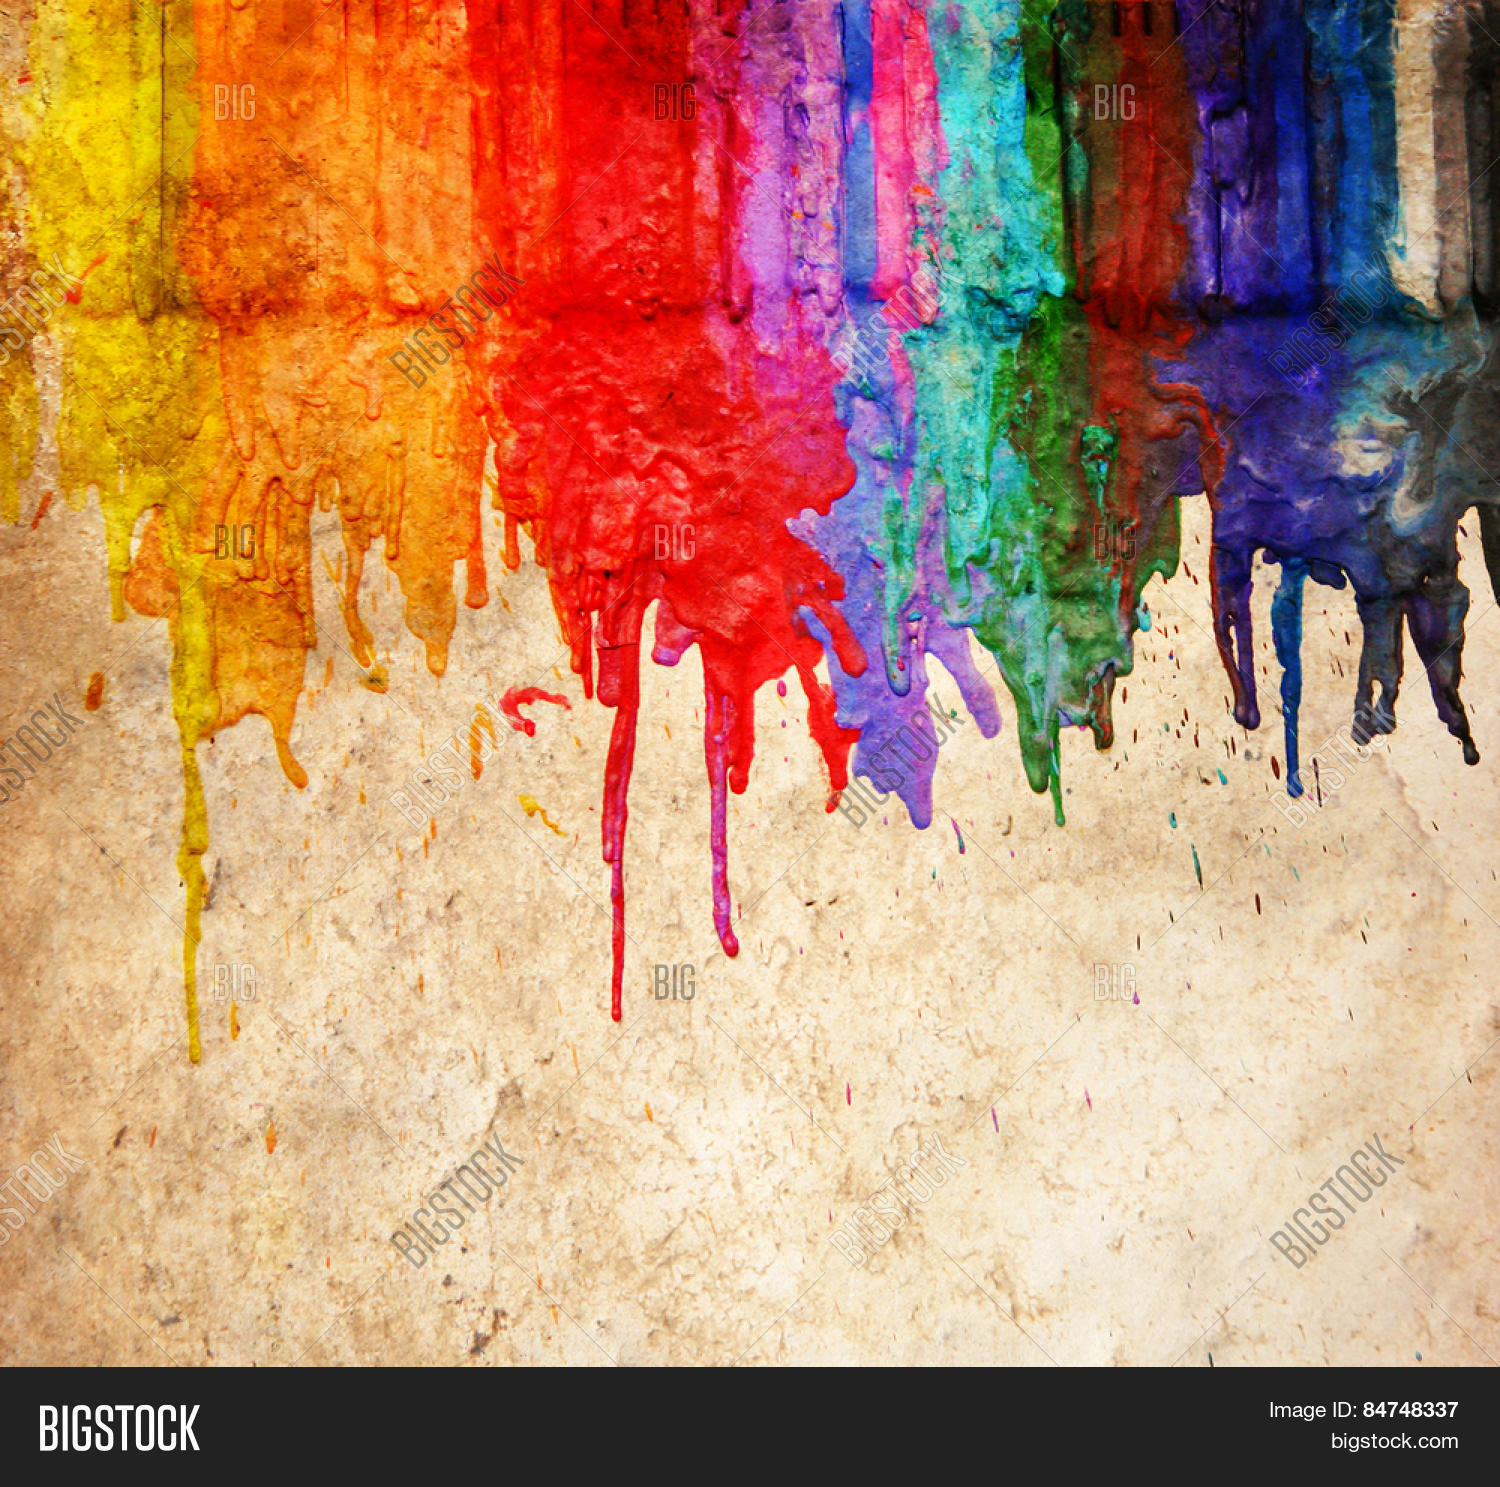 Image Color Texture Image Photo Trial Bigstock 1500x1487